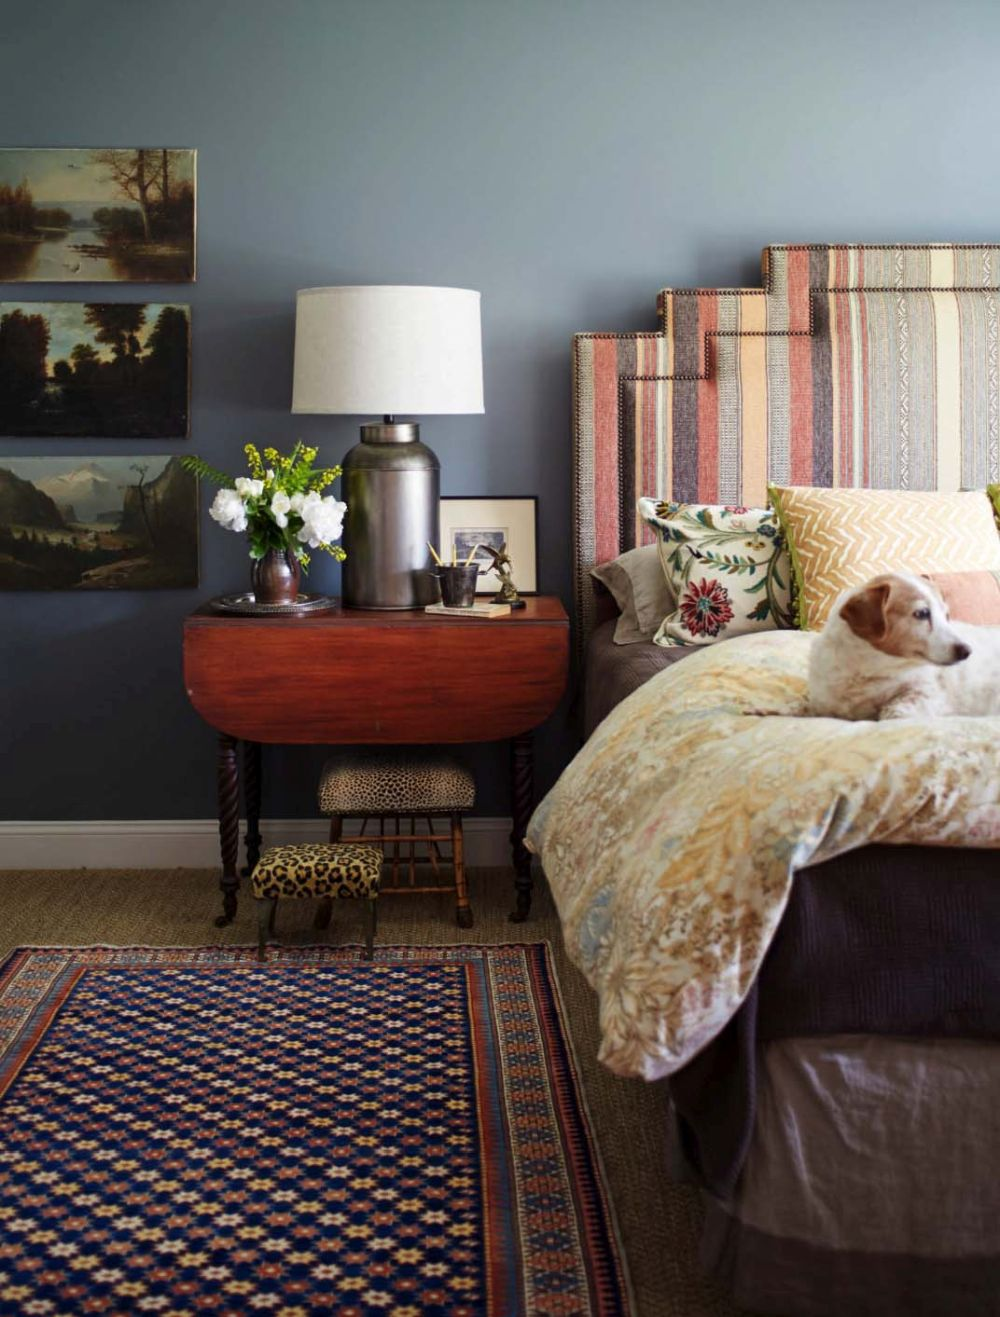 Colorful rugs and artwork give each room a special, custom appearance